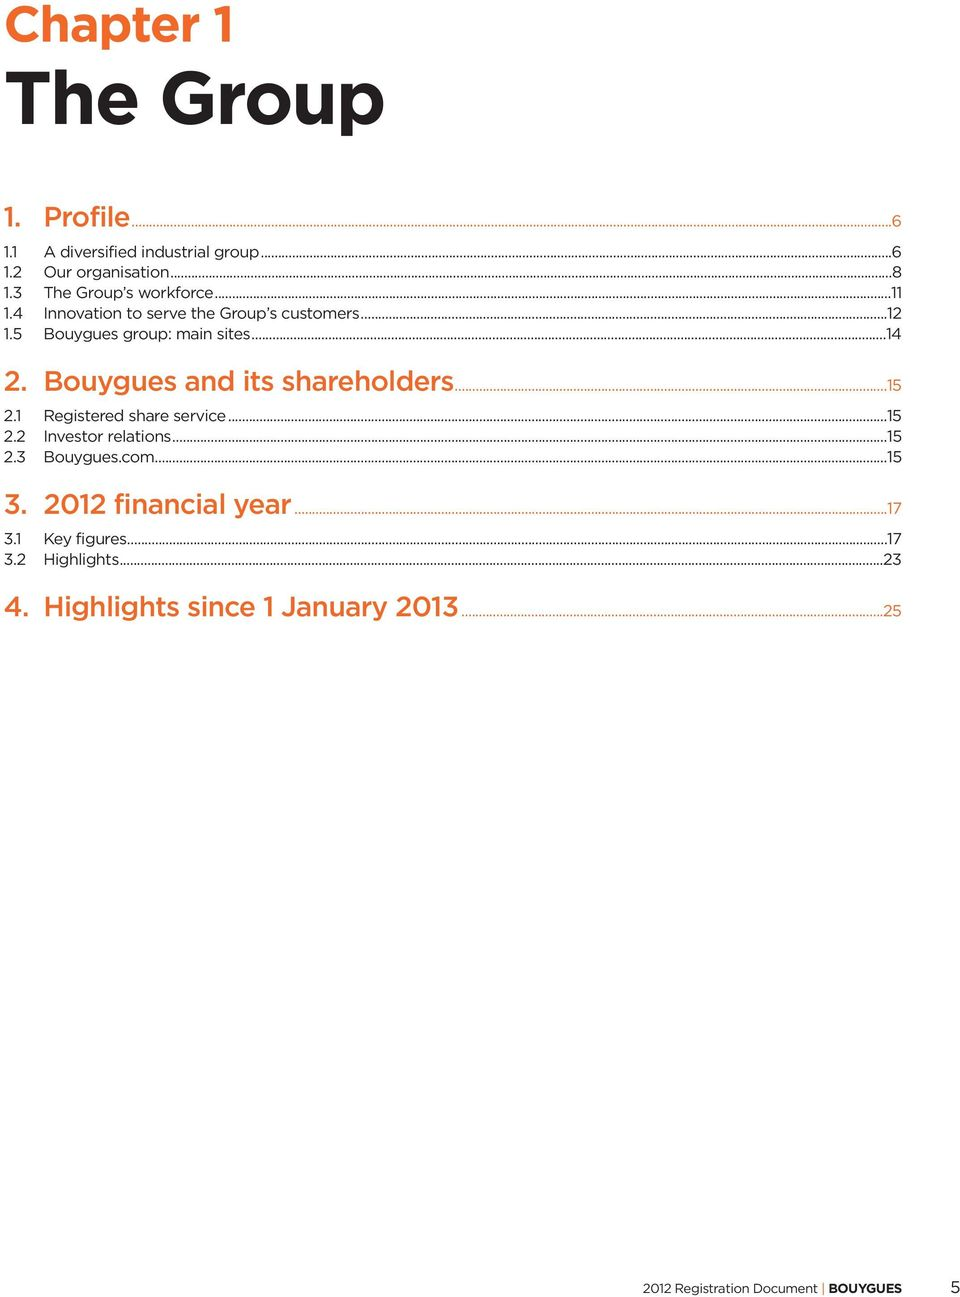 Bouygues and its shareholders...15 2.1 Registered share service...15 2.2 Investor relations...15 2.3 Bouygues.com...15 3.